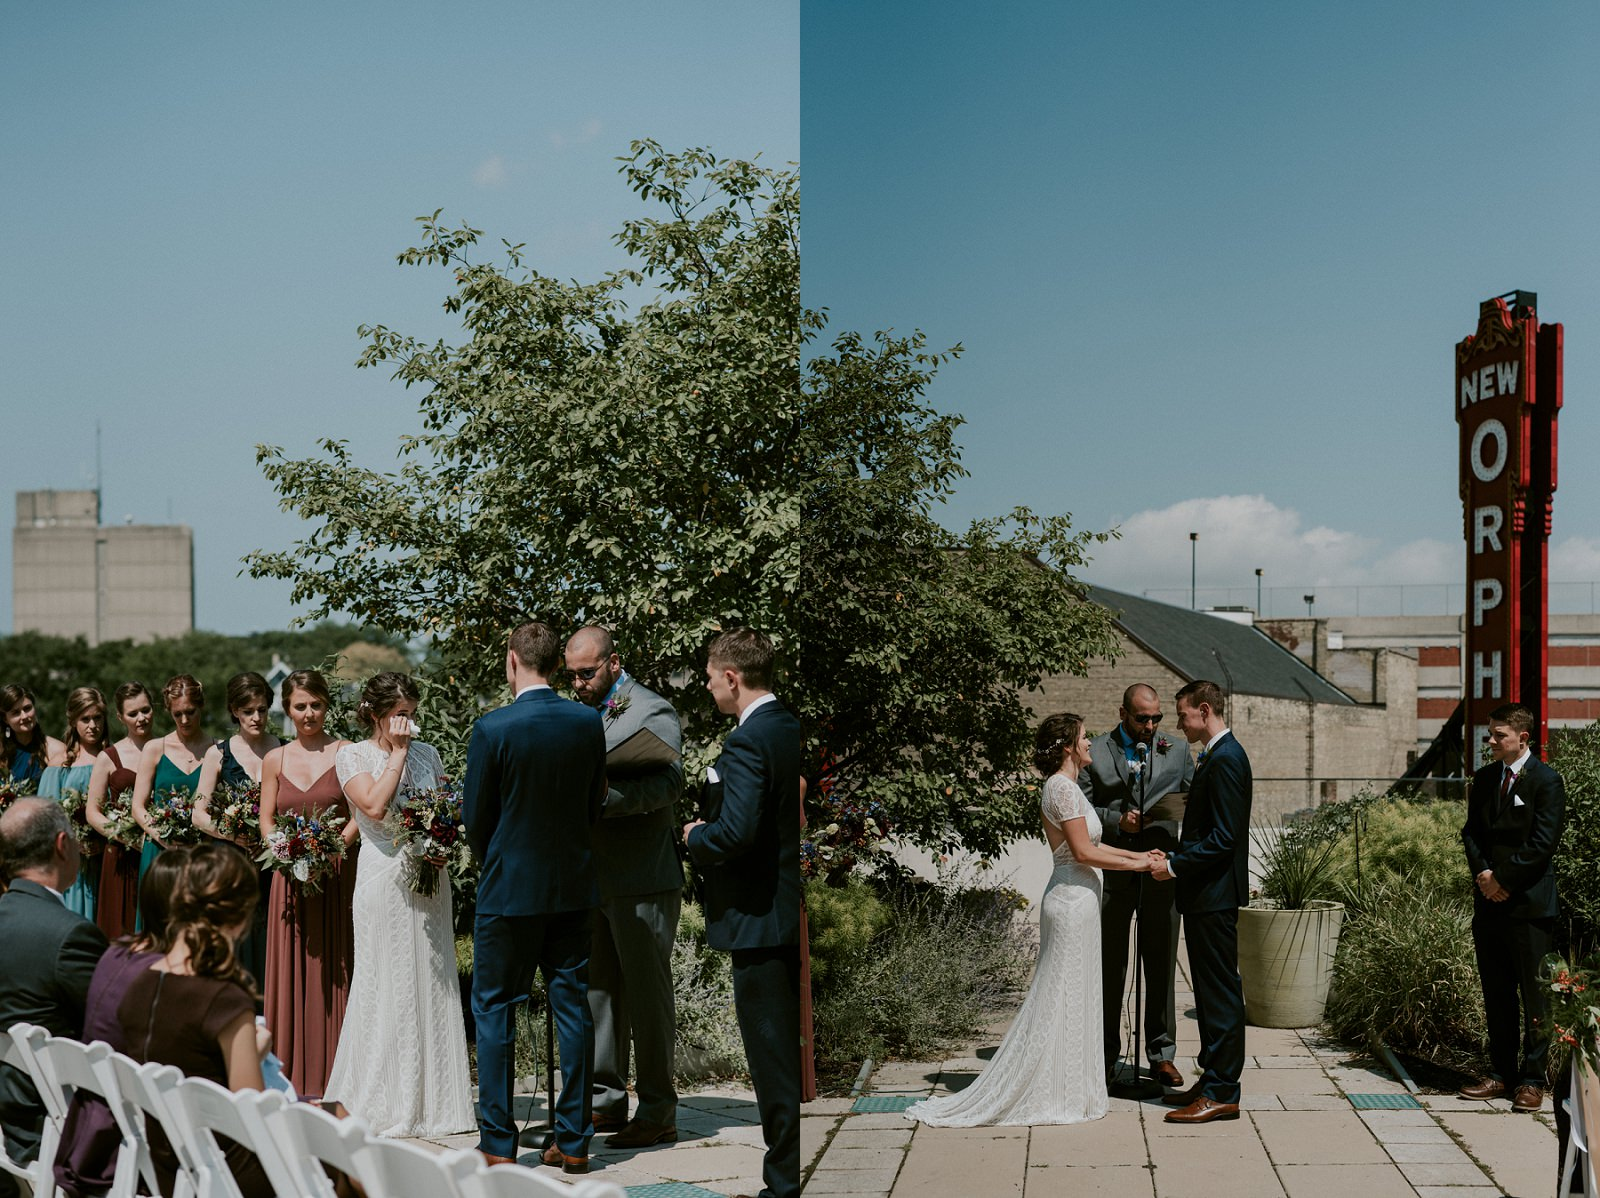 Madison WI Wedding Photographer, The Lageret Stoughton WI, Multi Colored Bridesmaid Dresses, Groomsman in Navy Suits, Jewel Colored Wedding